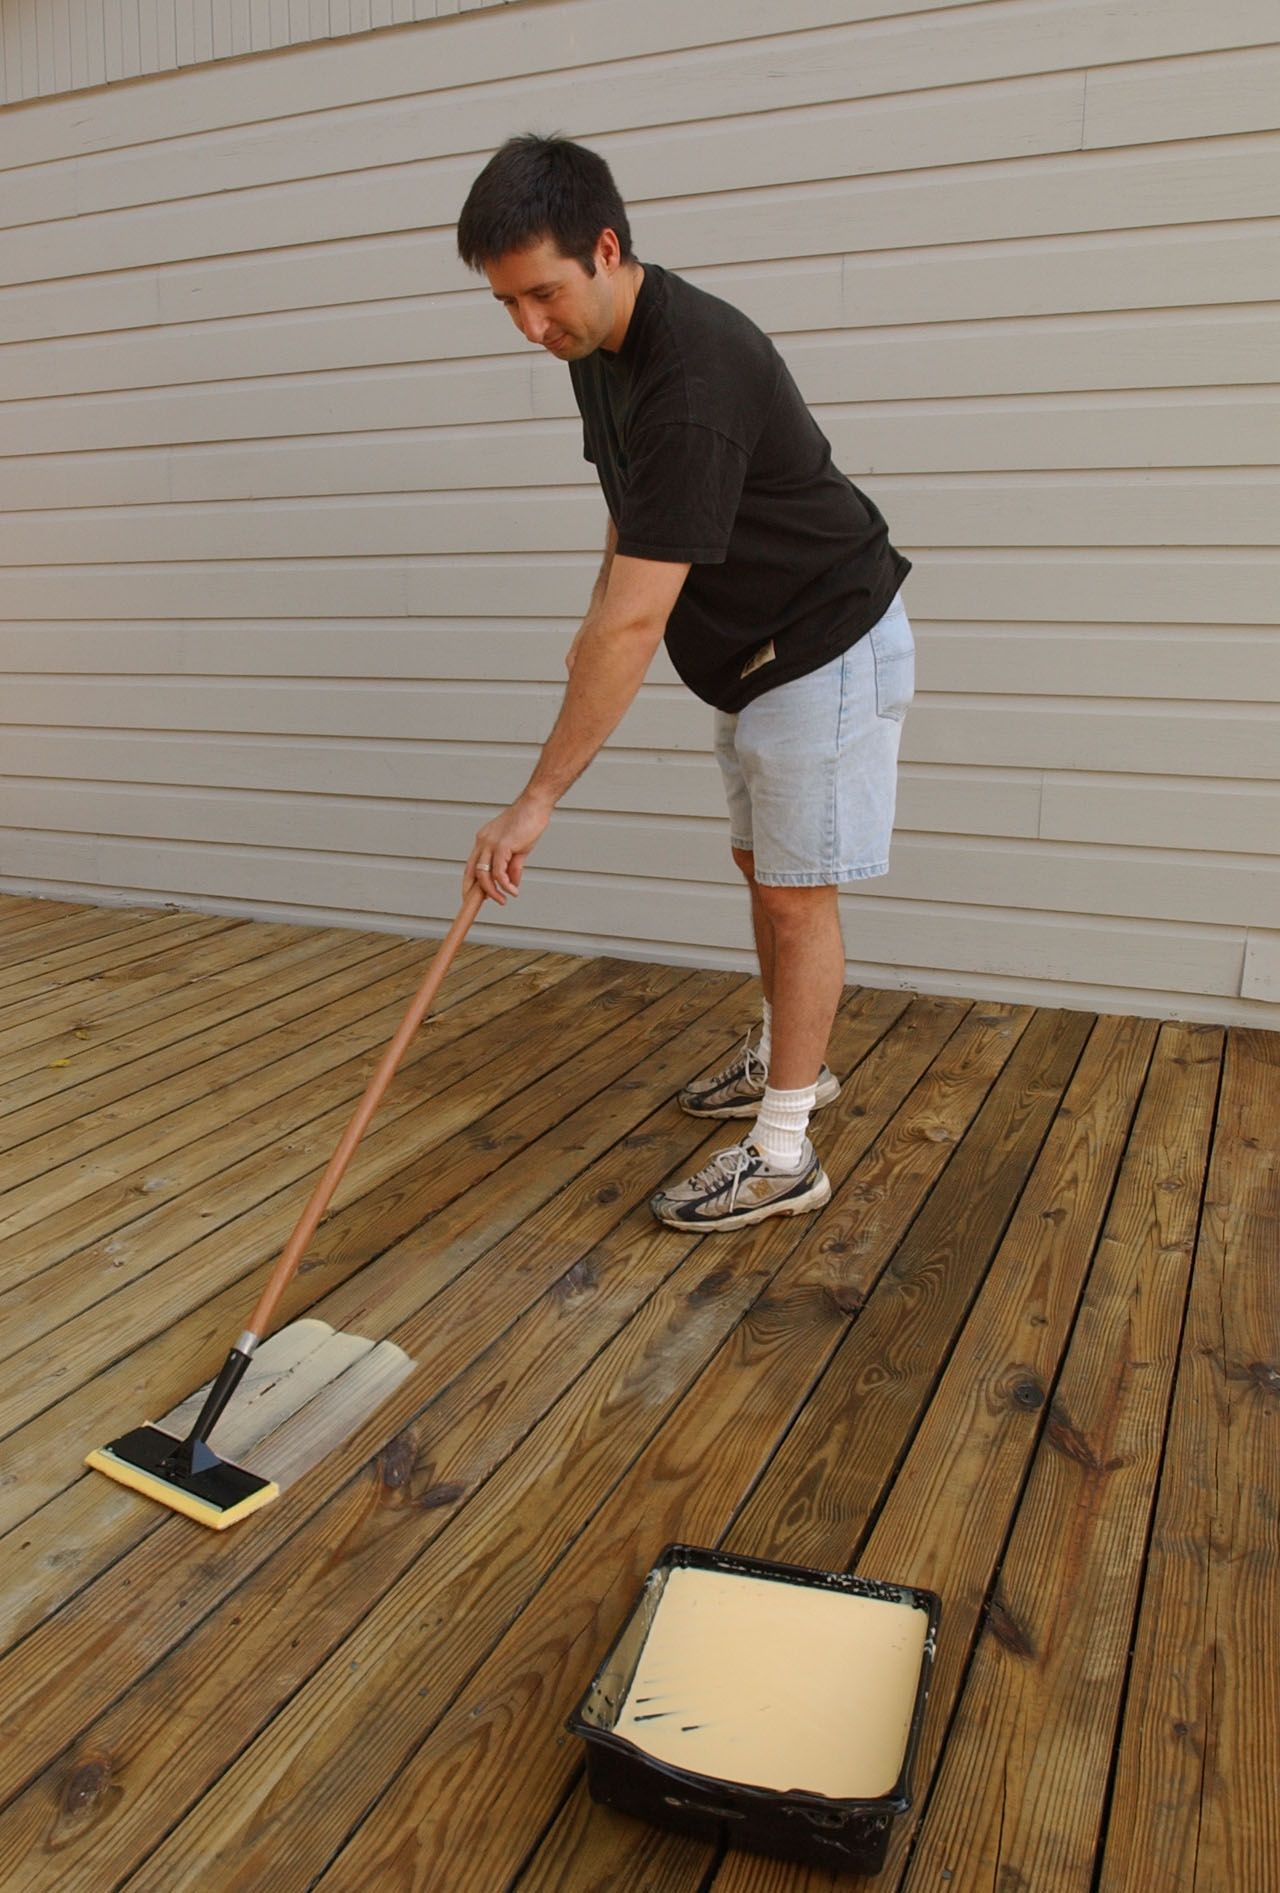 A paint pad is a great tool for applying thompsons water seal thompsons waterseal offers waterproofing products to care for your wood deck and other exterior surfaces our waterproofing and wood stain products will baanklon Gallery